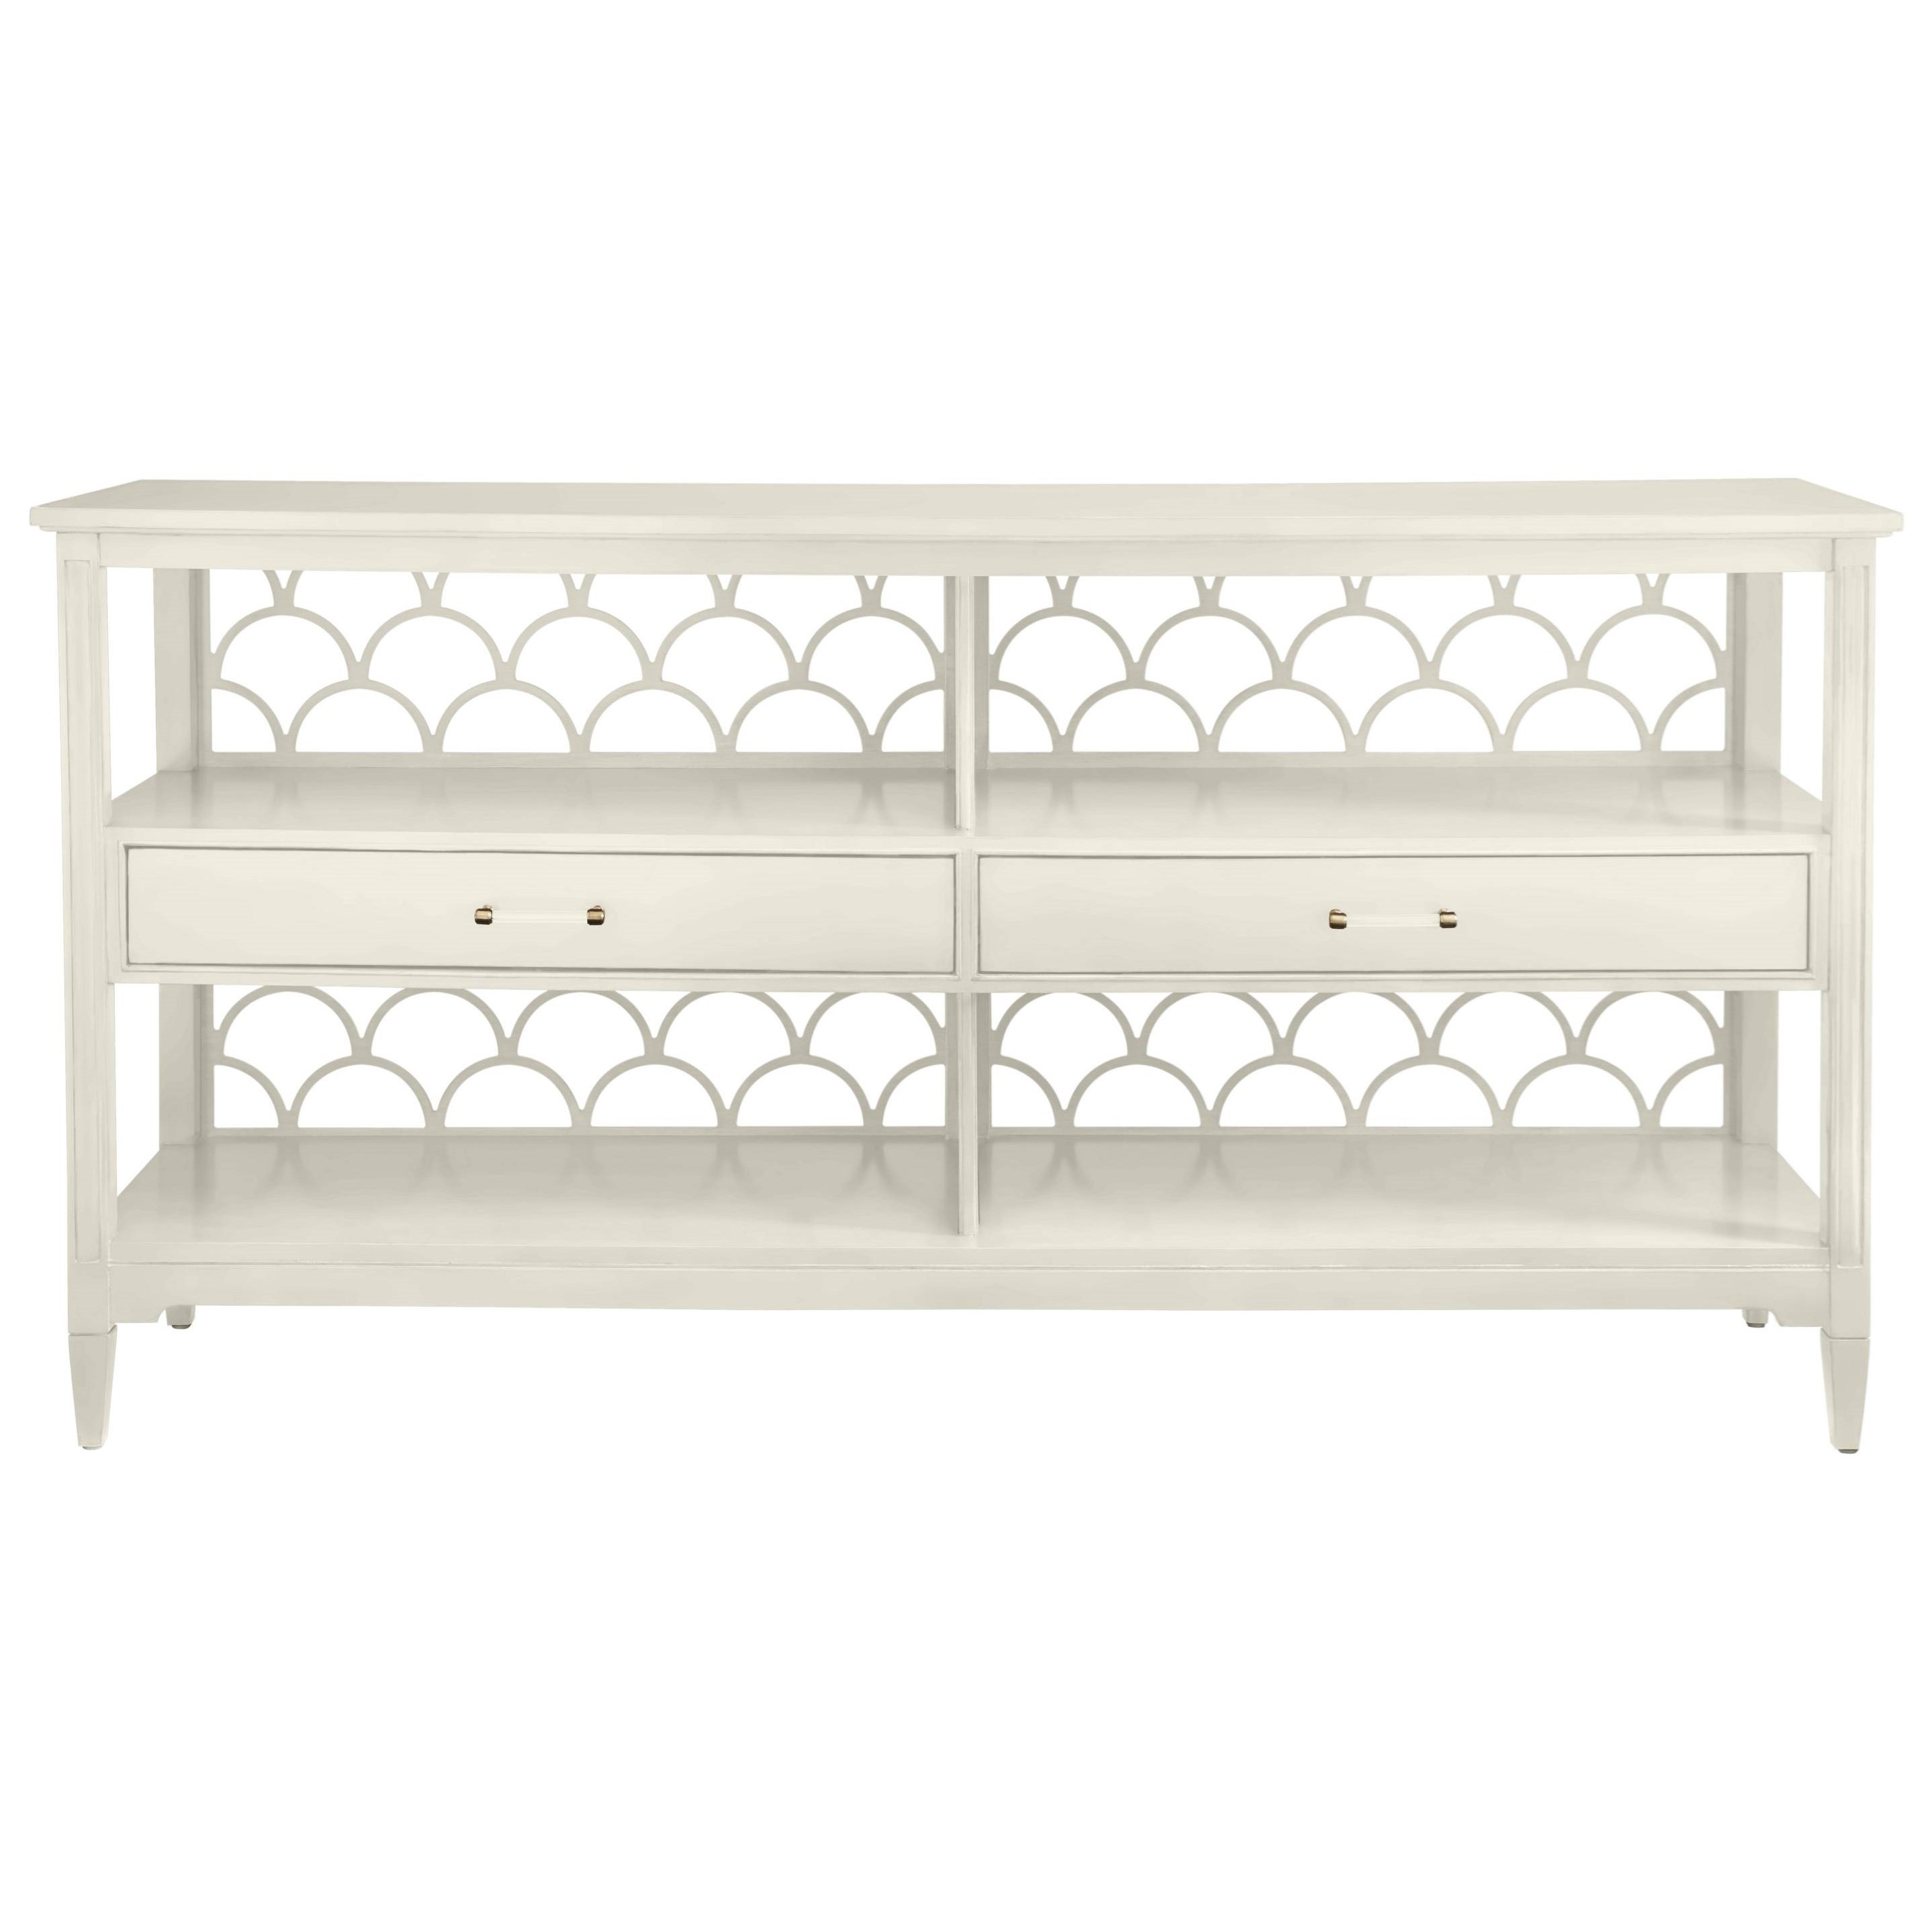 Stanley Furniture Coastal Living Oasis Sea Cloud Sideboard - Item Number: 527-21-06